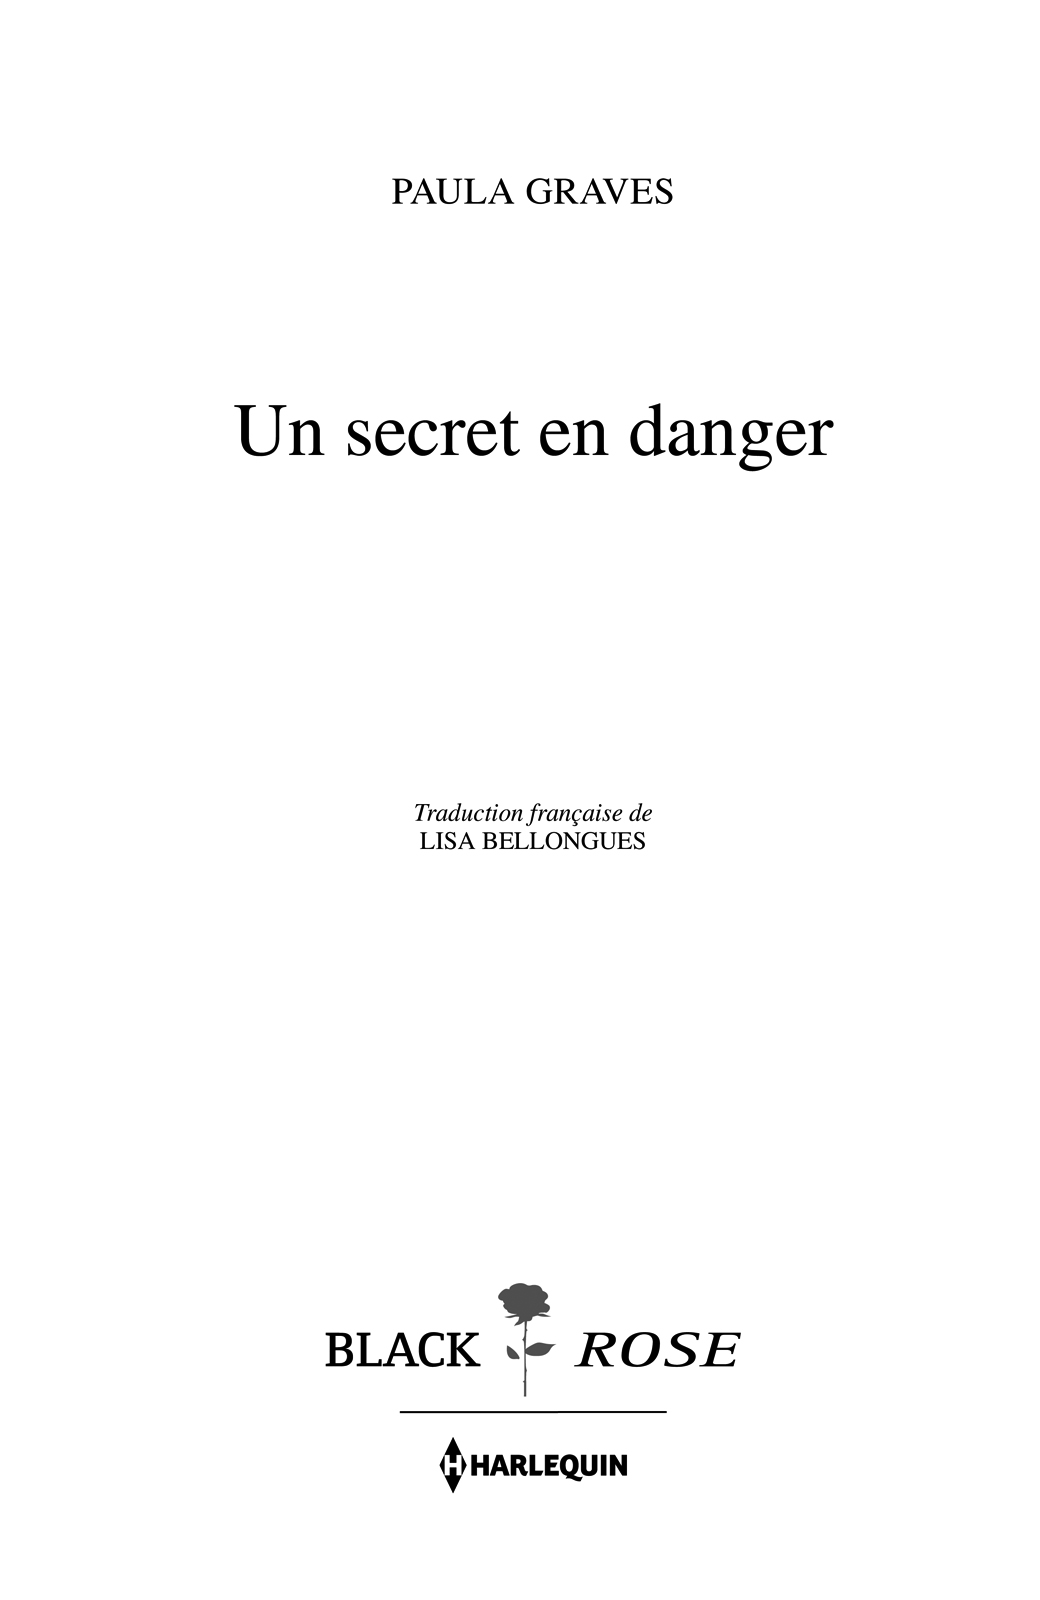 Page de titre : Paula Graves, Un secret en danger, Harlequin